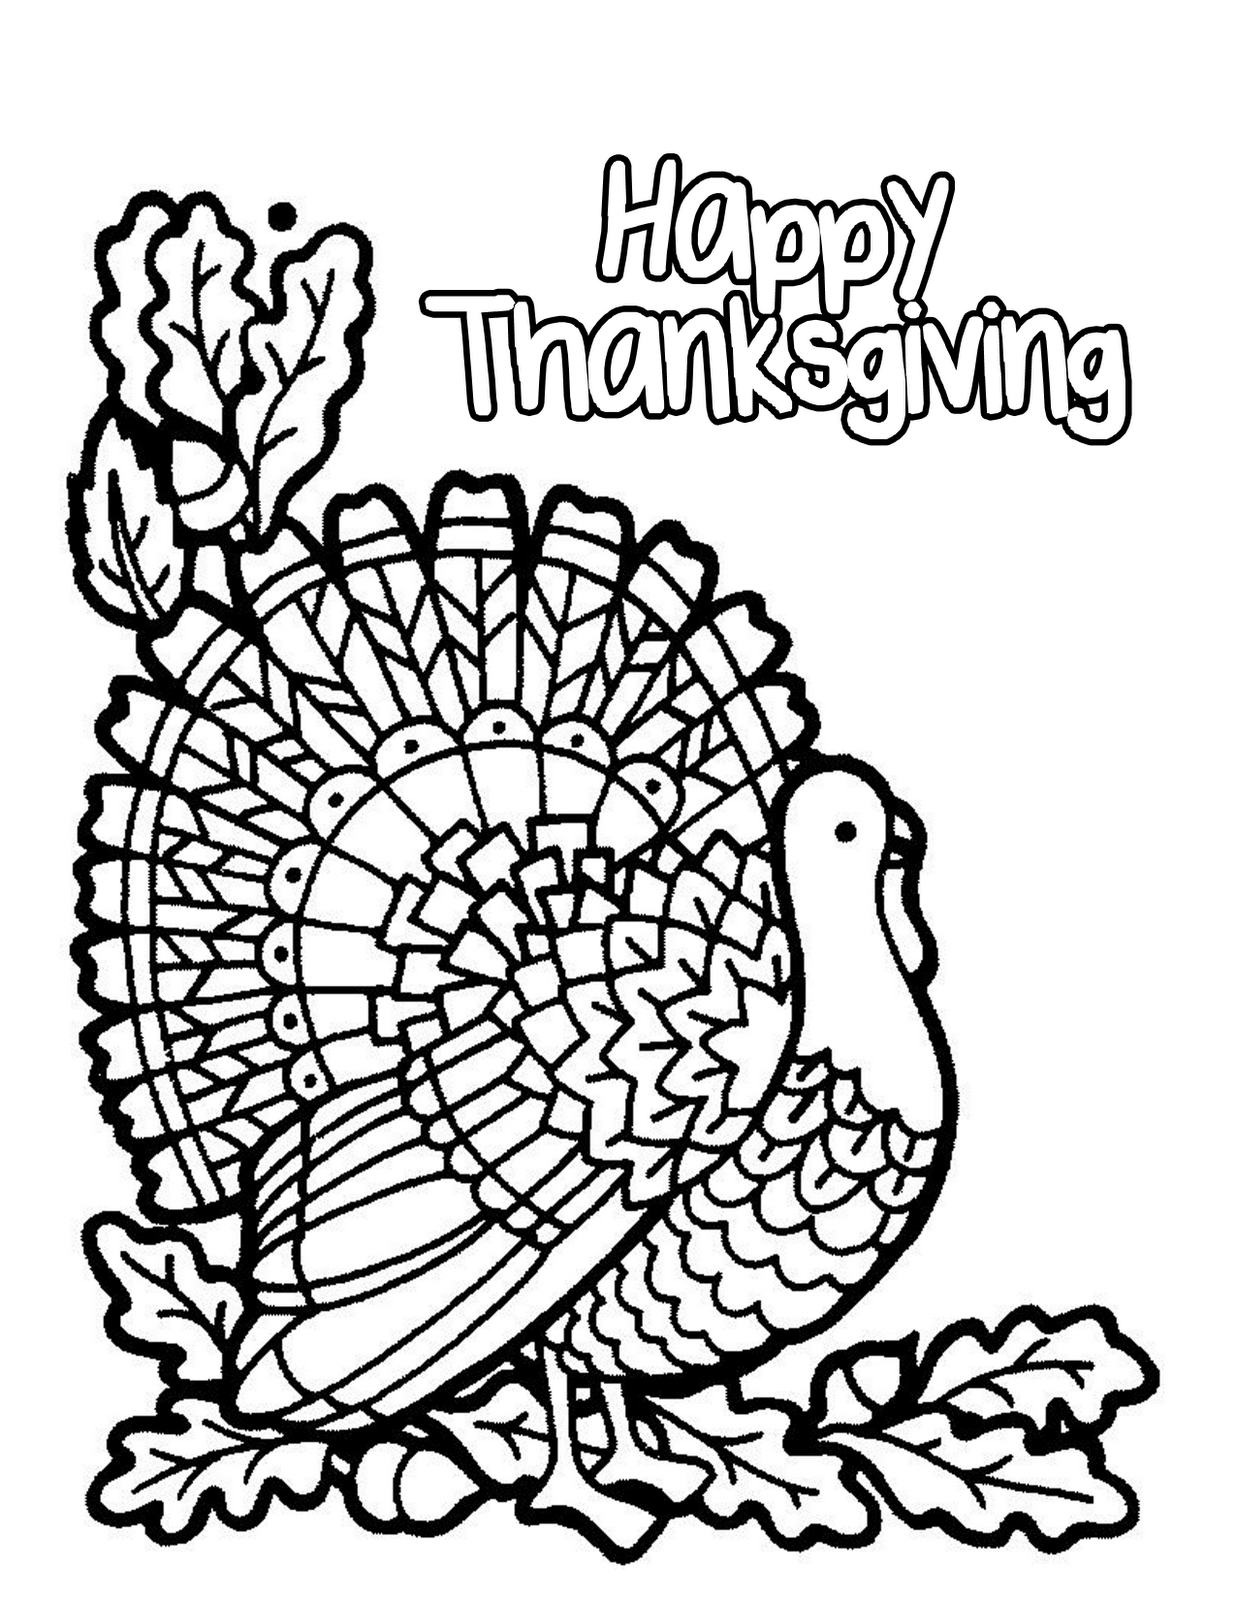 Thanksgiving Coloring Pages Free : Thanksgiving Coloring Pages For Adults Coloring Home